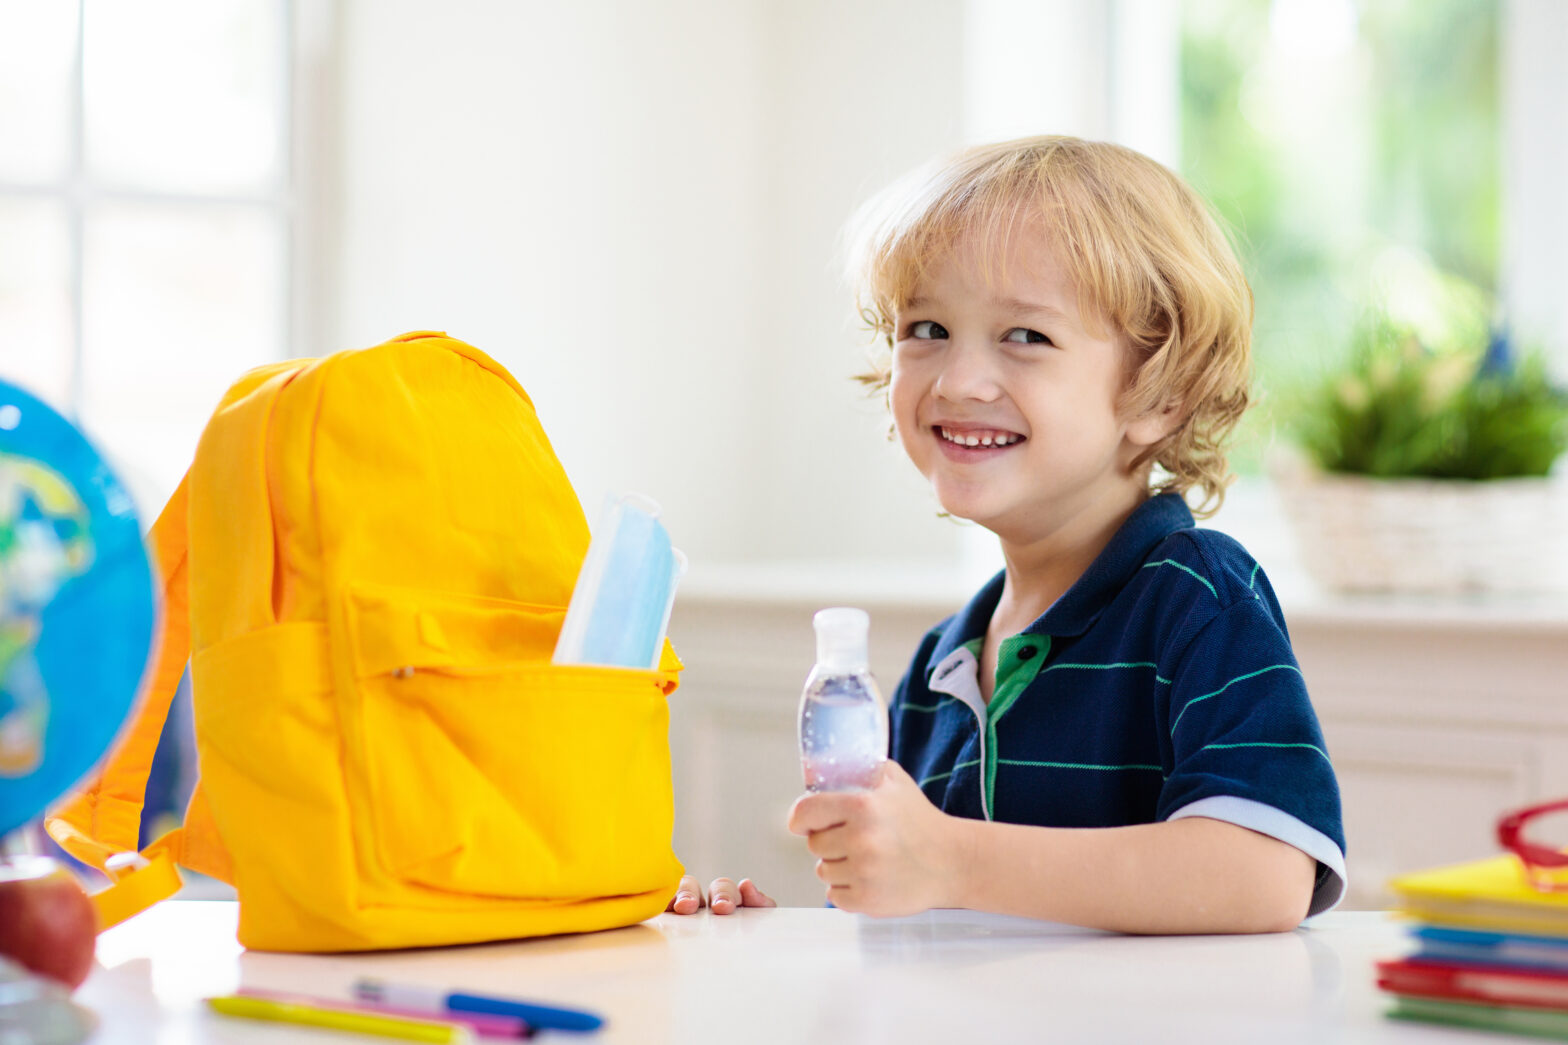 Child at a childcare center prepared for COVID-19 with hand sanitizer and a face mask.